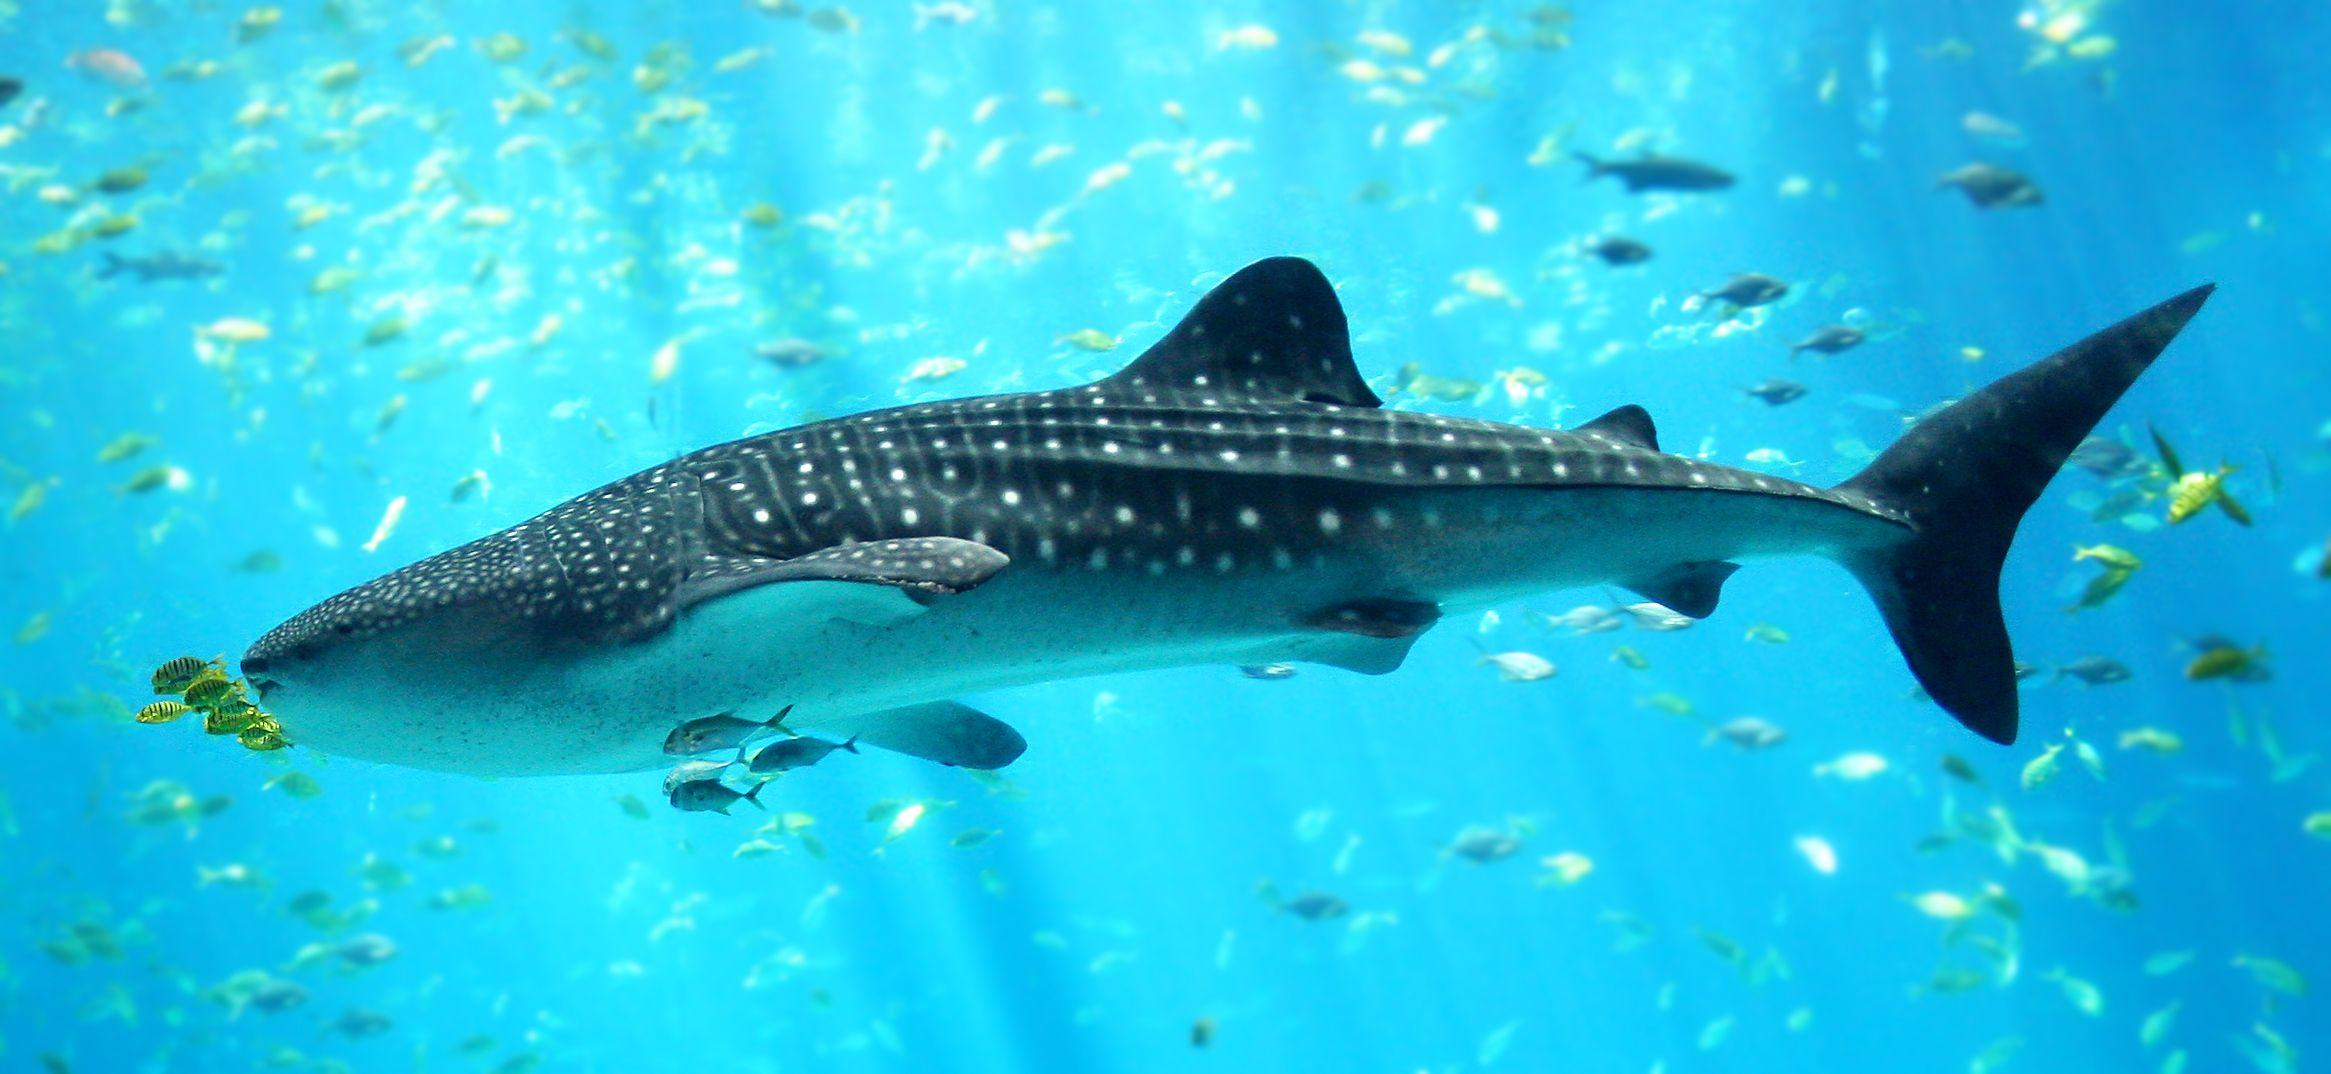 Whale Shark Wallpapers High Quality | Download Free